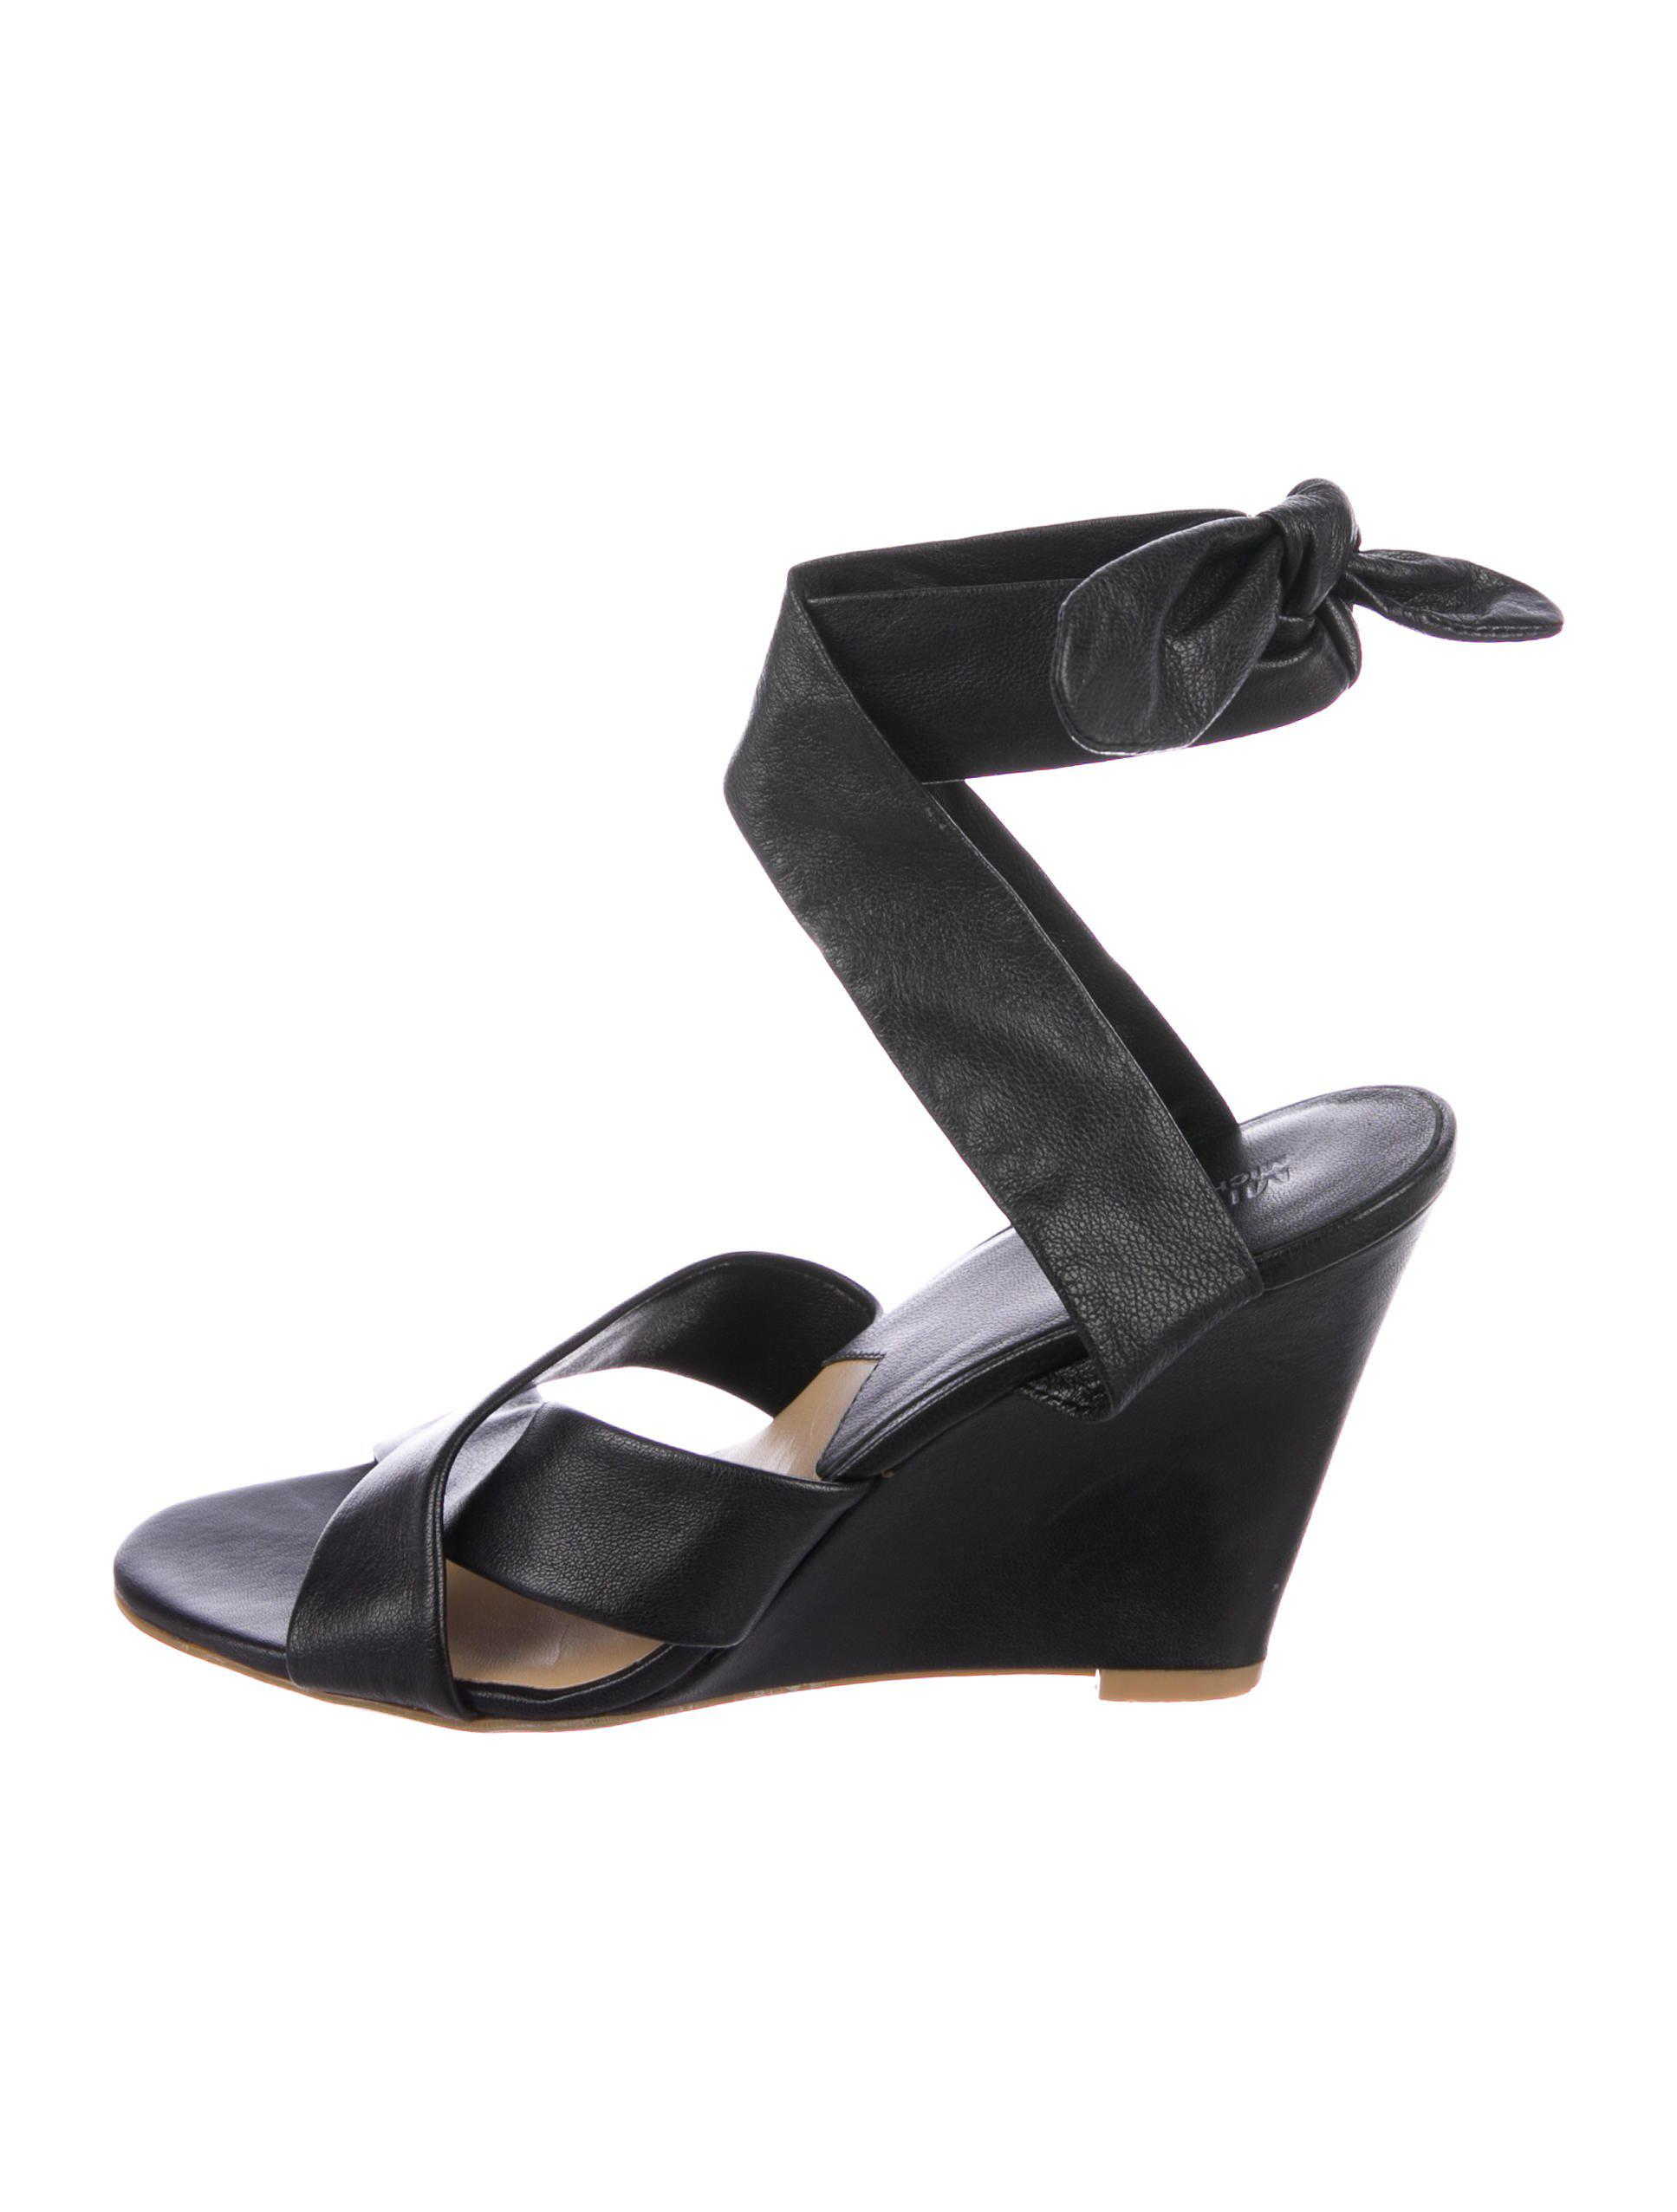 0df6775ce47f Lyst - Michael Michael Kors Michael Kors Leather Wedge Sandals in Black